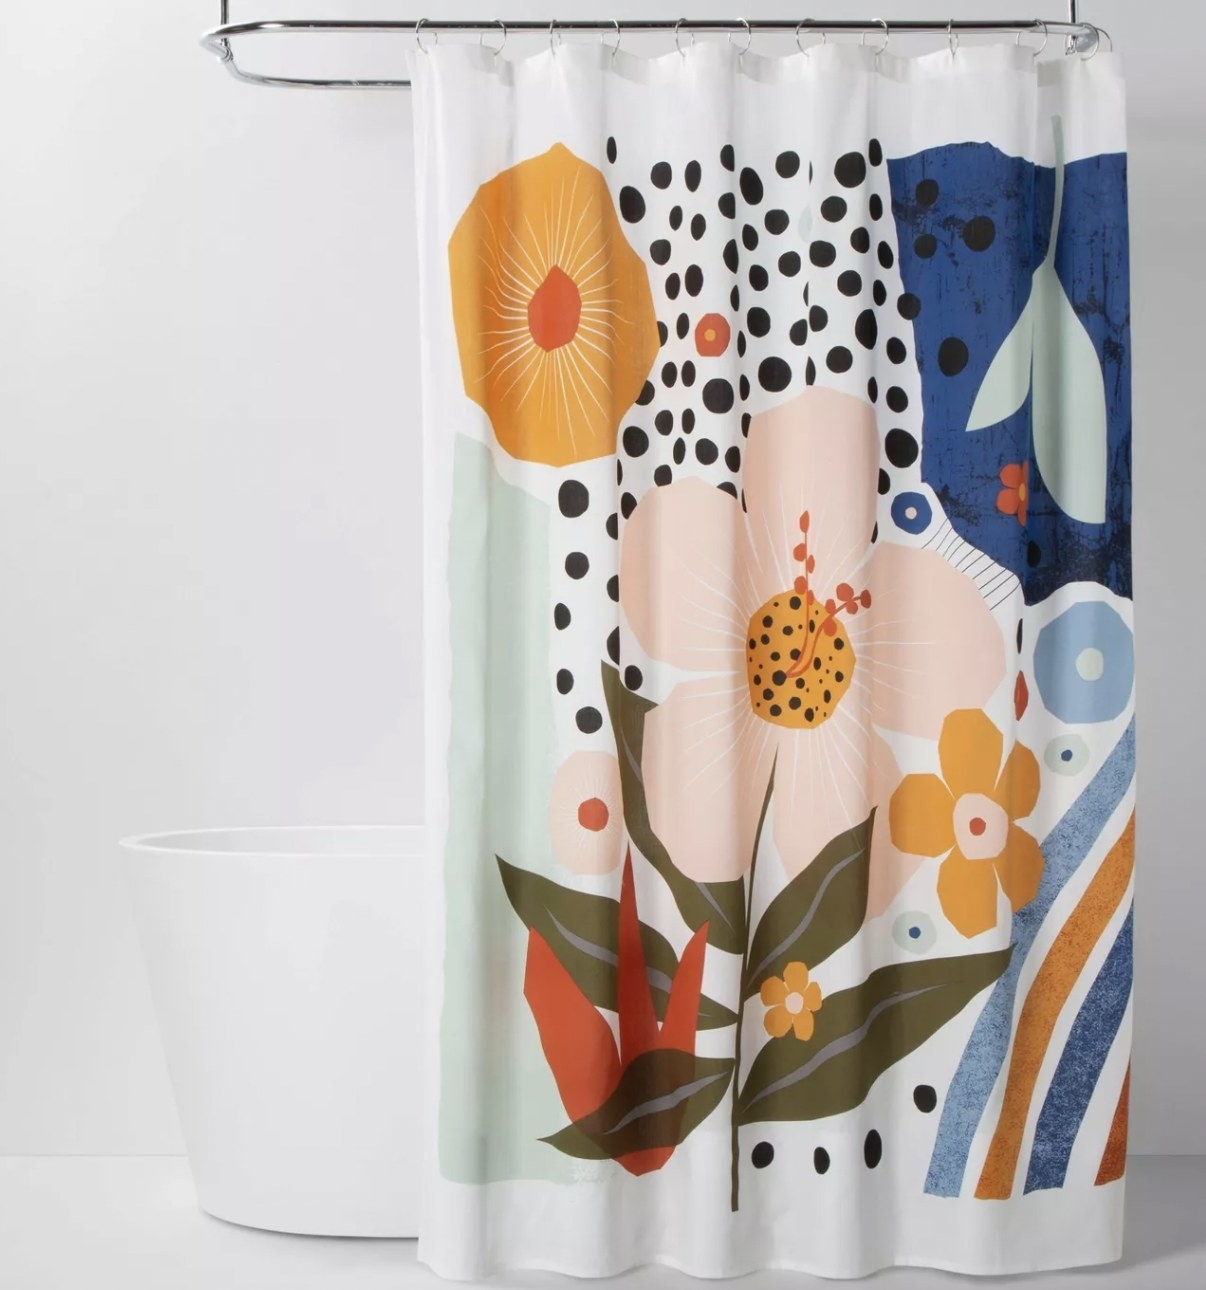 a shower curtain with graphic flowers on it